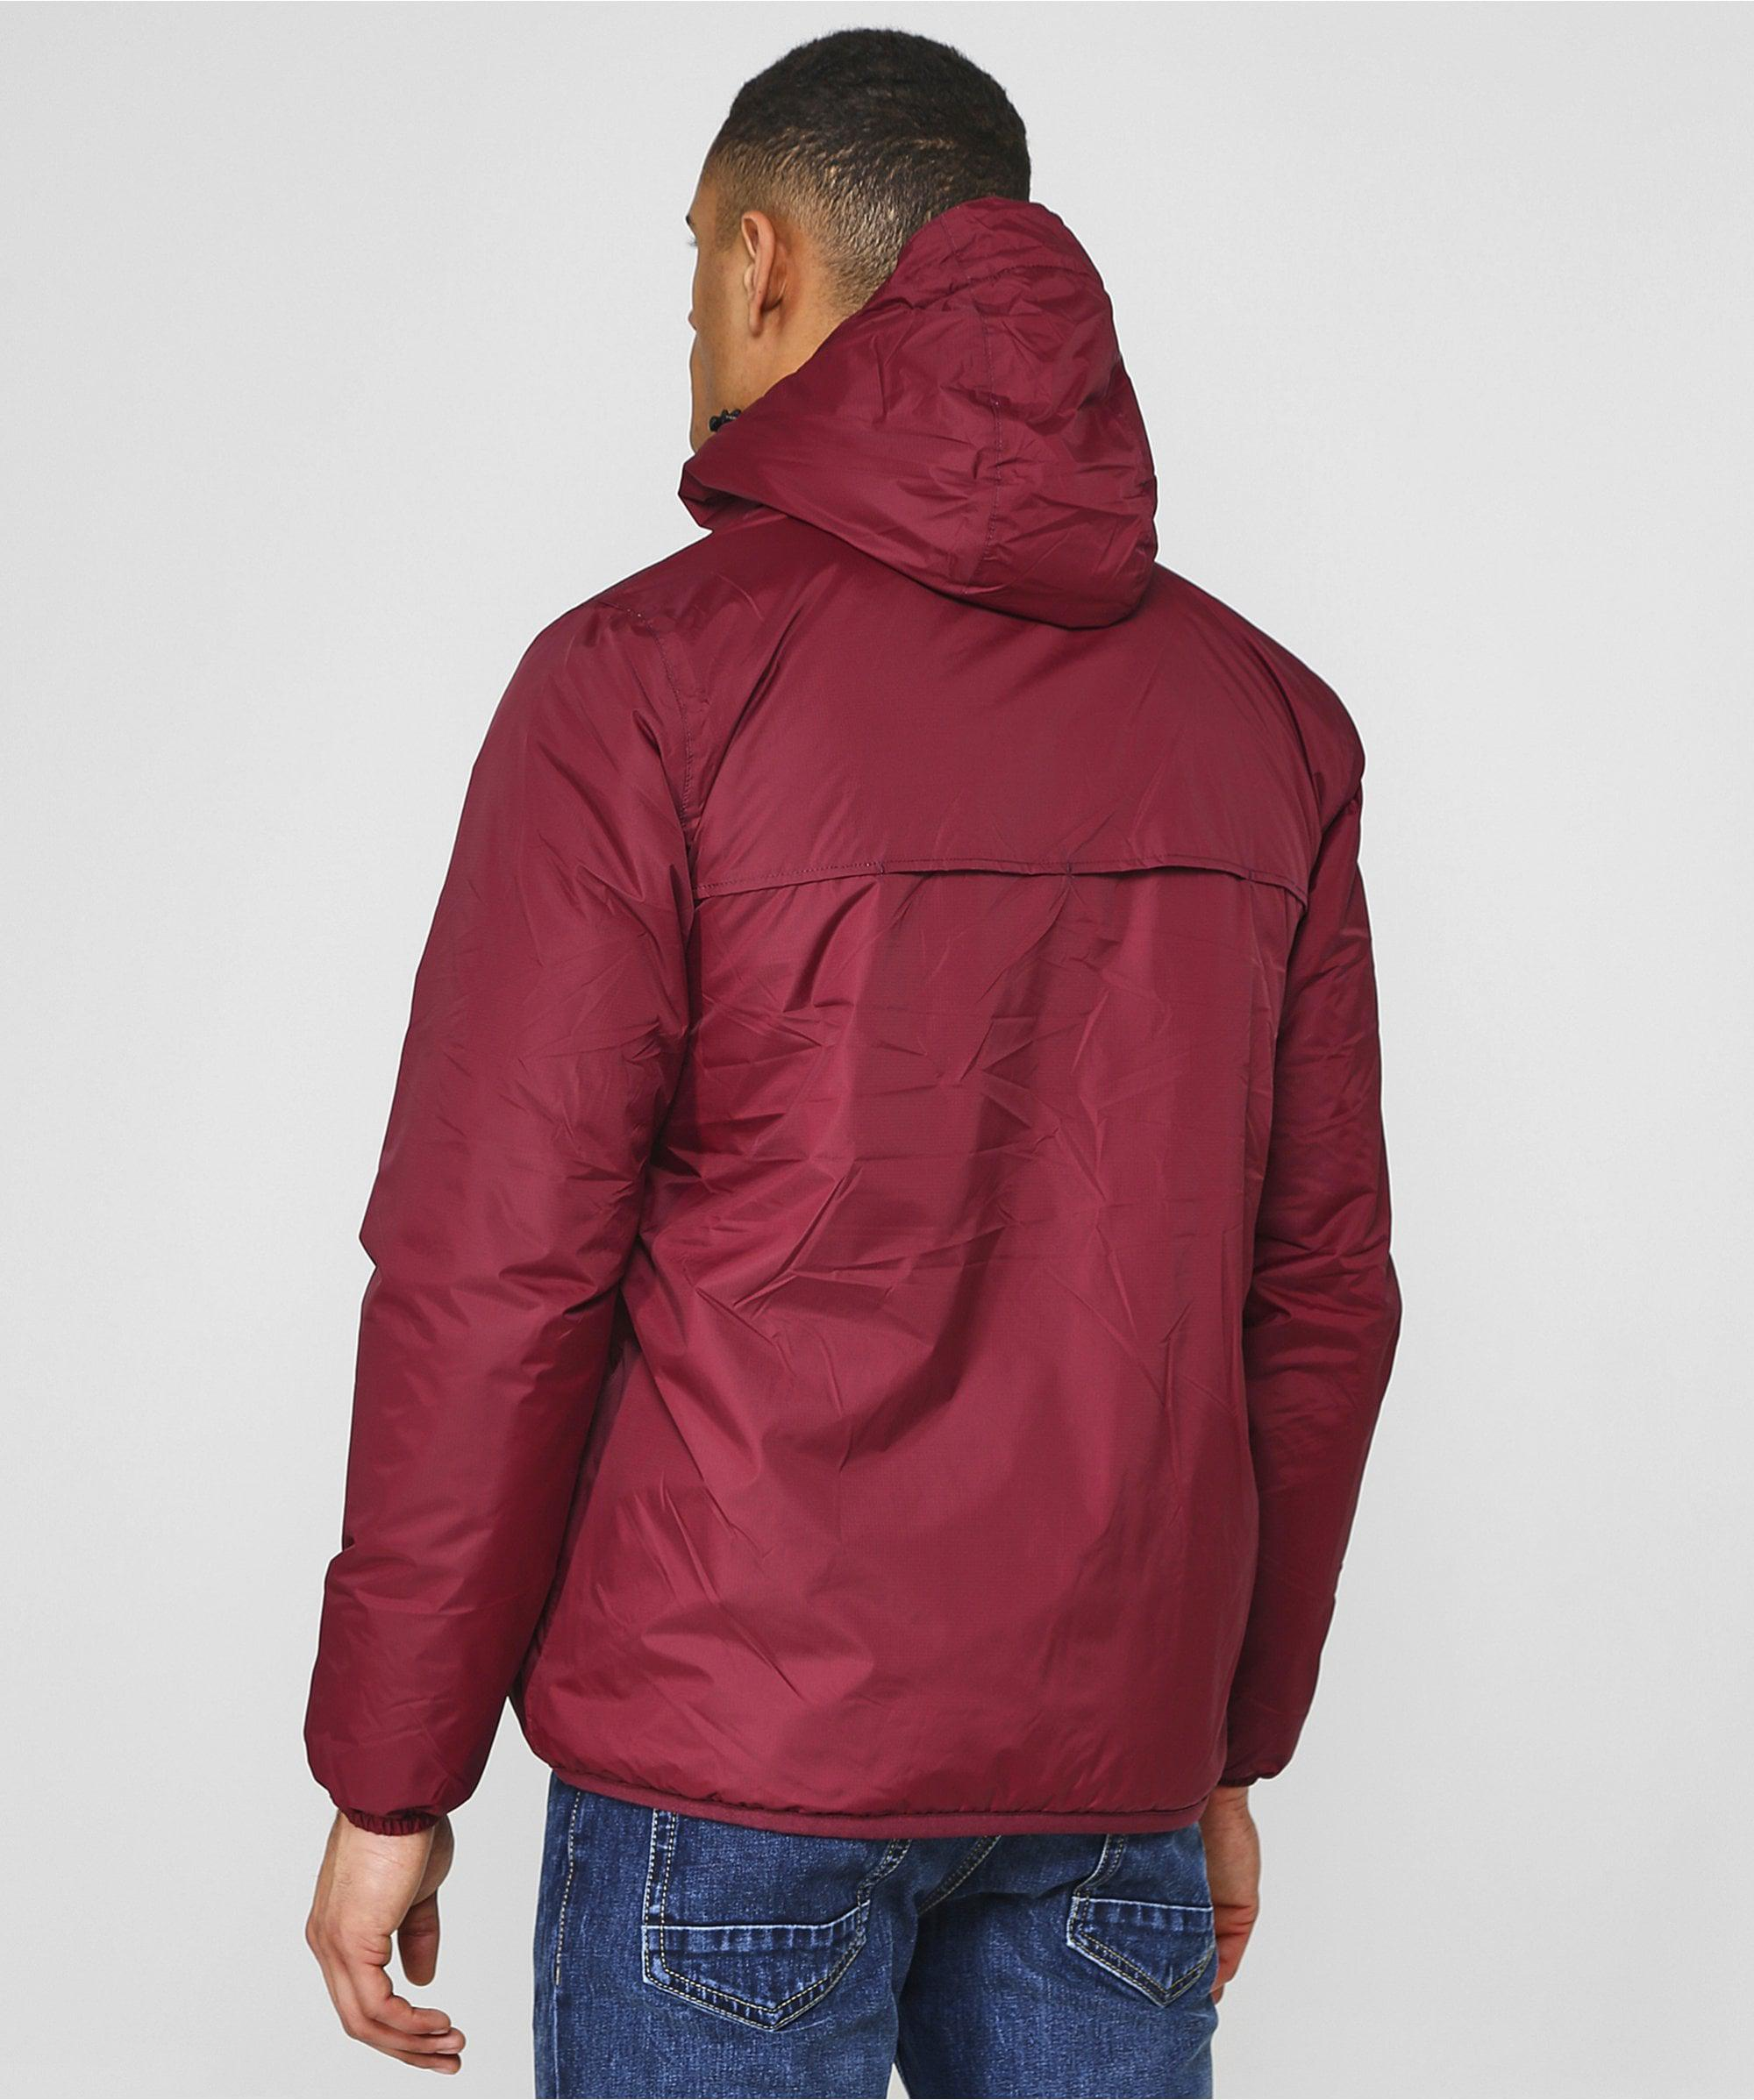 e93ae72f66 K-Way Water Resistant Le Vrai 3.0 Claude Orsetto Jacket in Red for ...